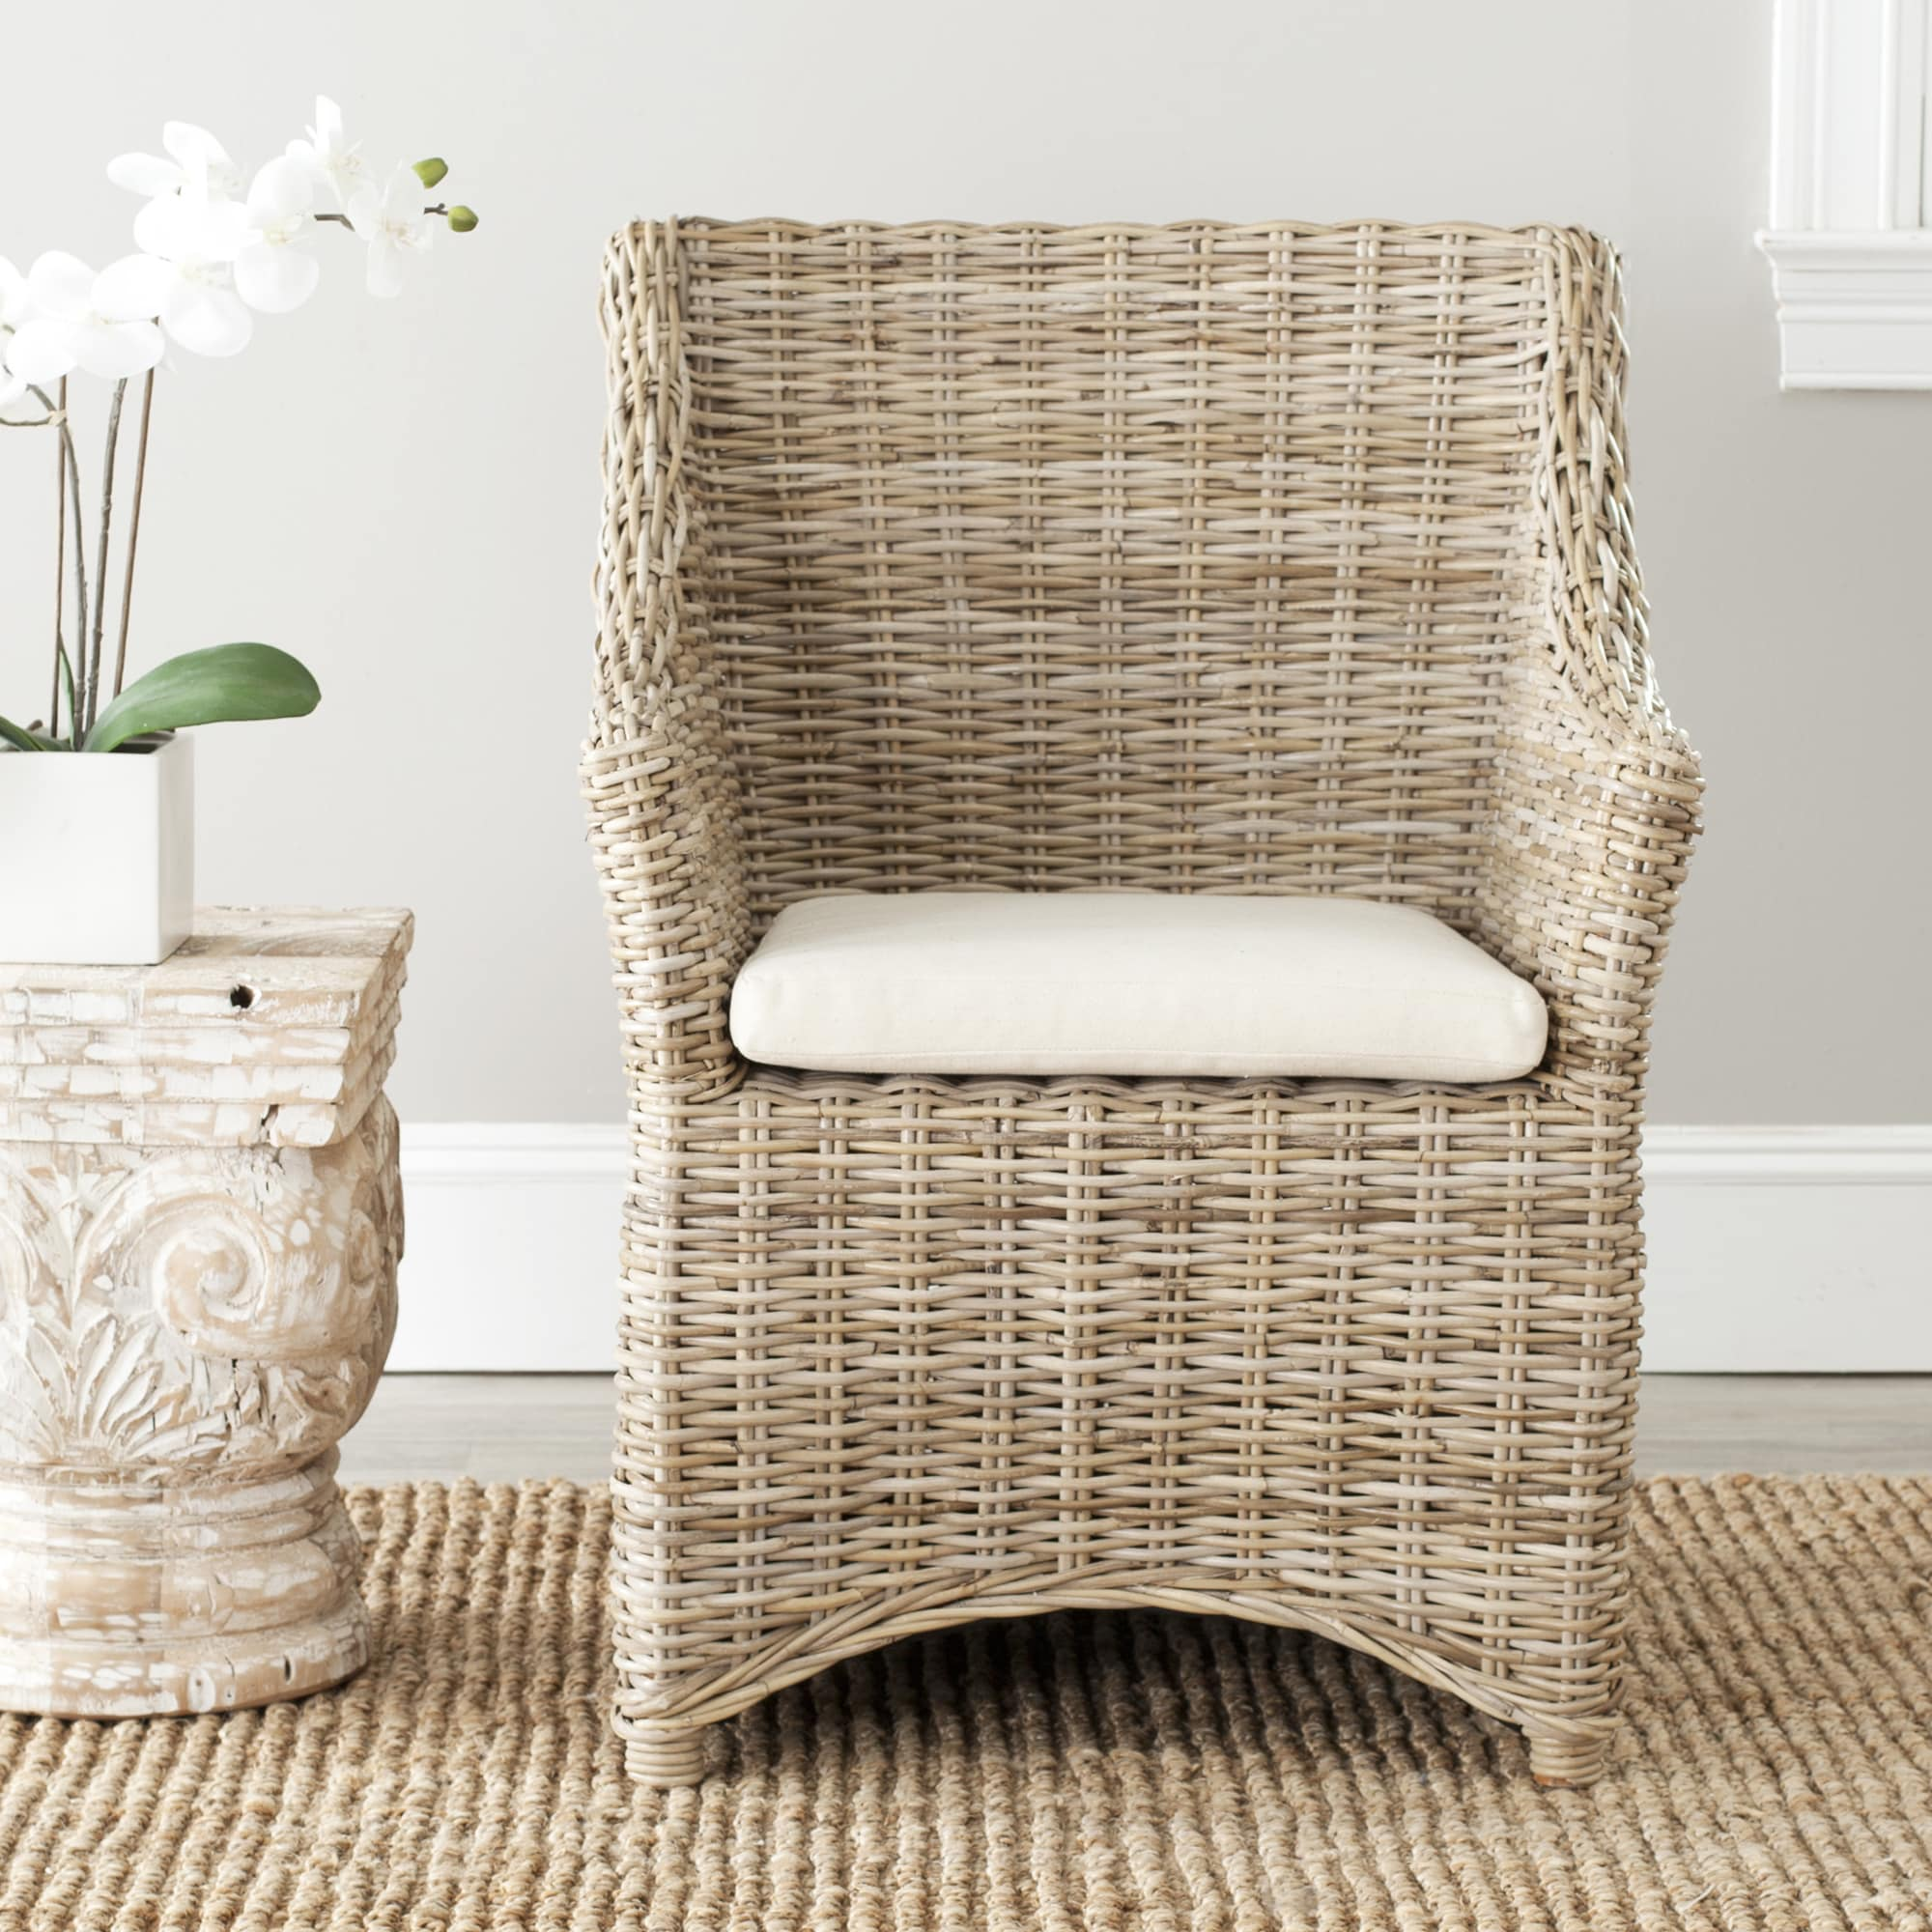 Cheap Wicker Chair: Safavieh St Thomas Indoor Wicker Washed-out Brown Wing